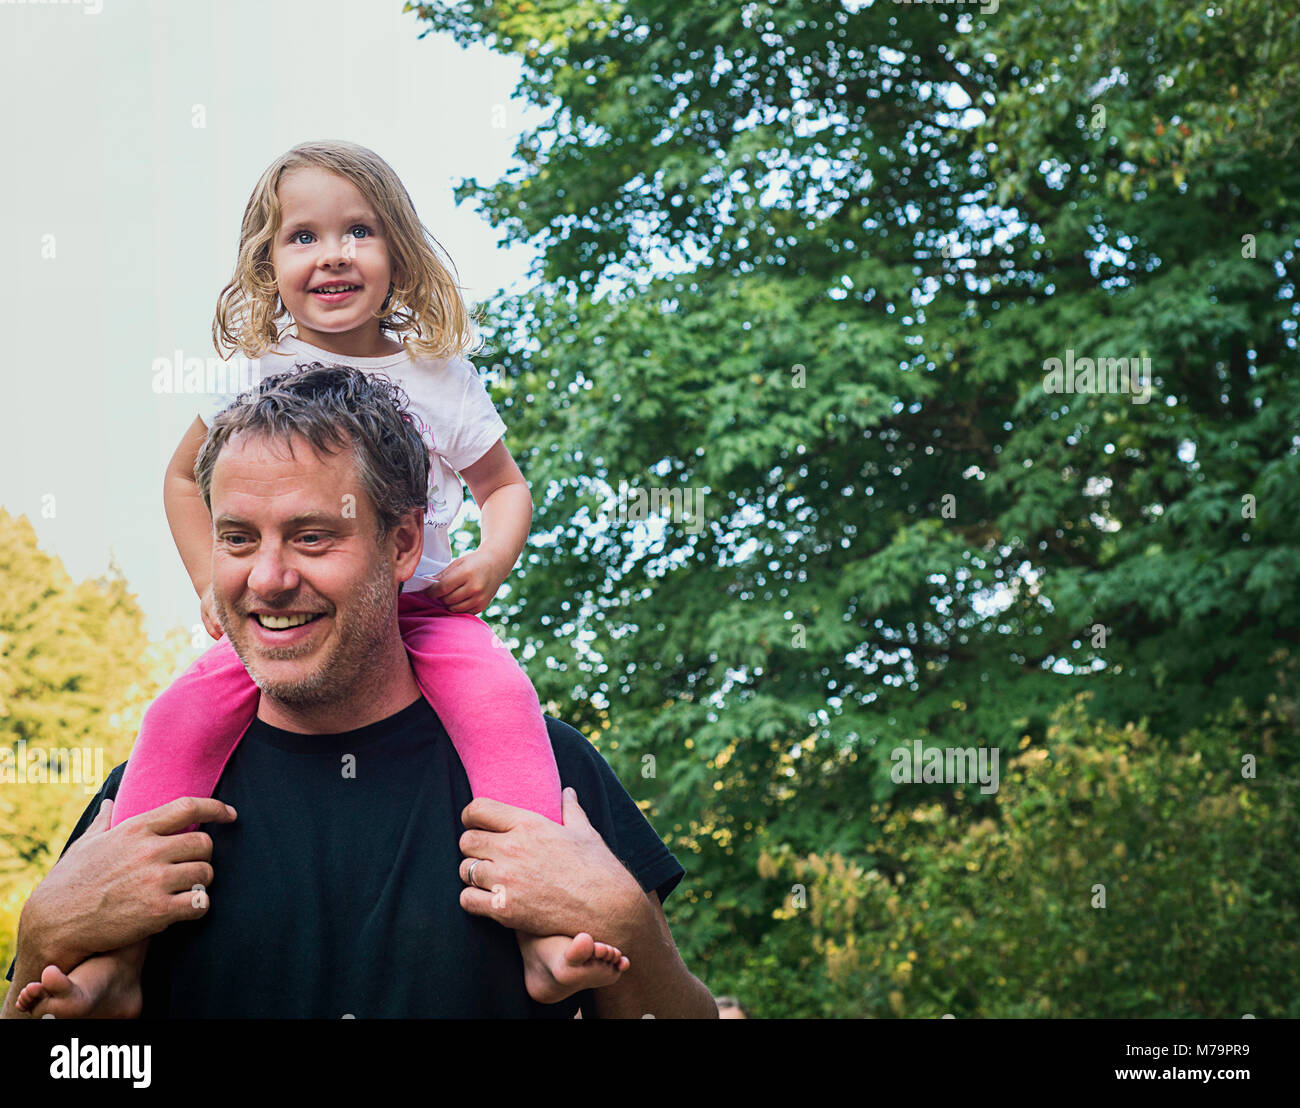 A 2 year old girl being piggy backed by her father. - Stock Image